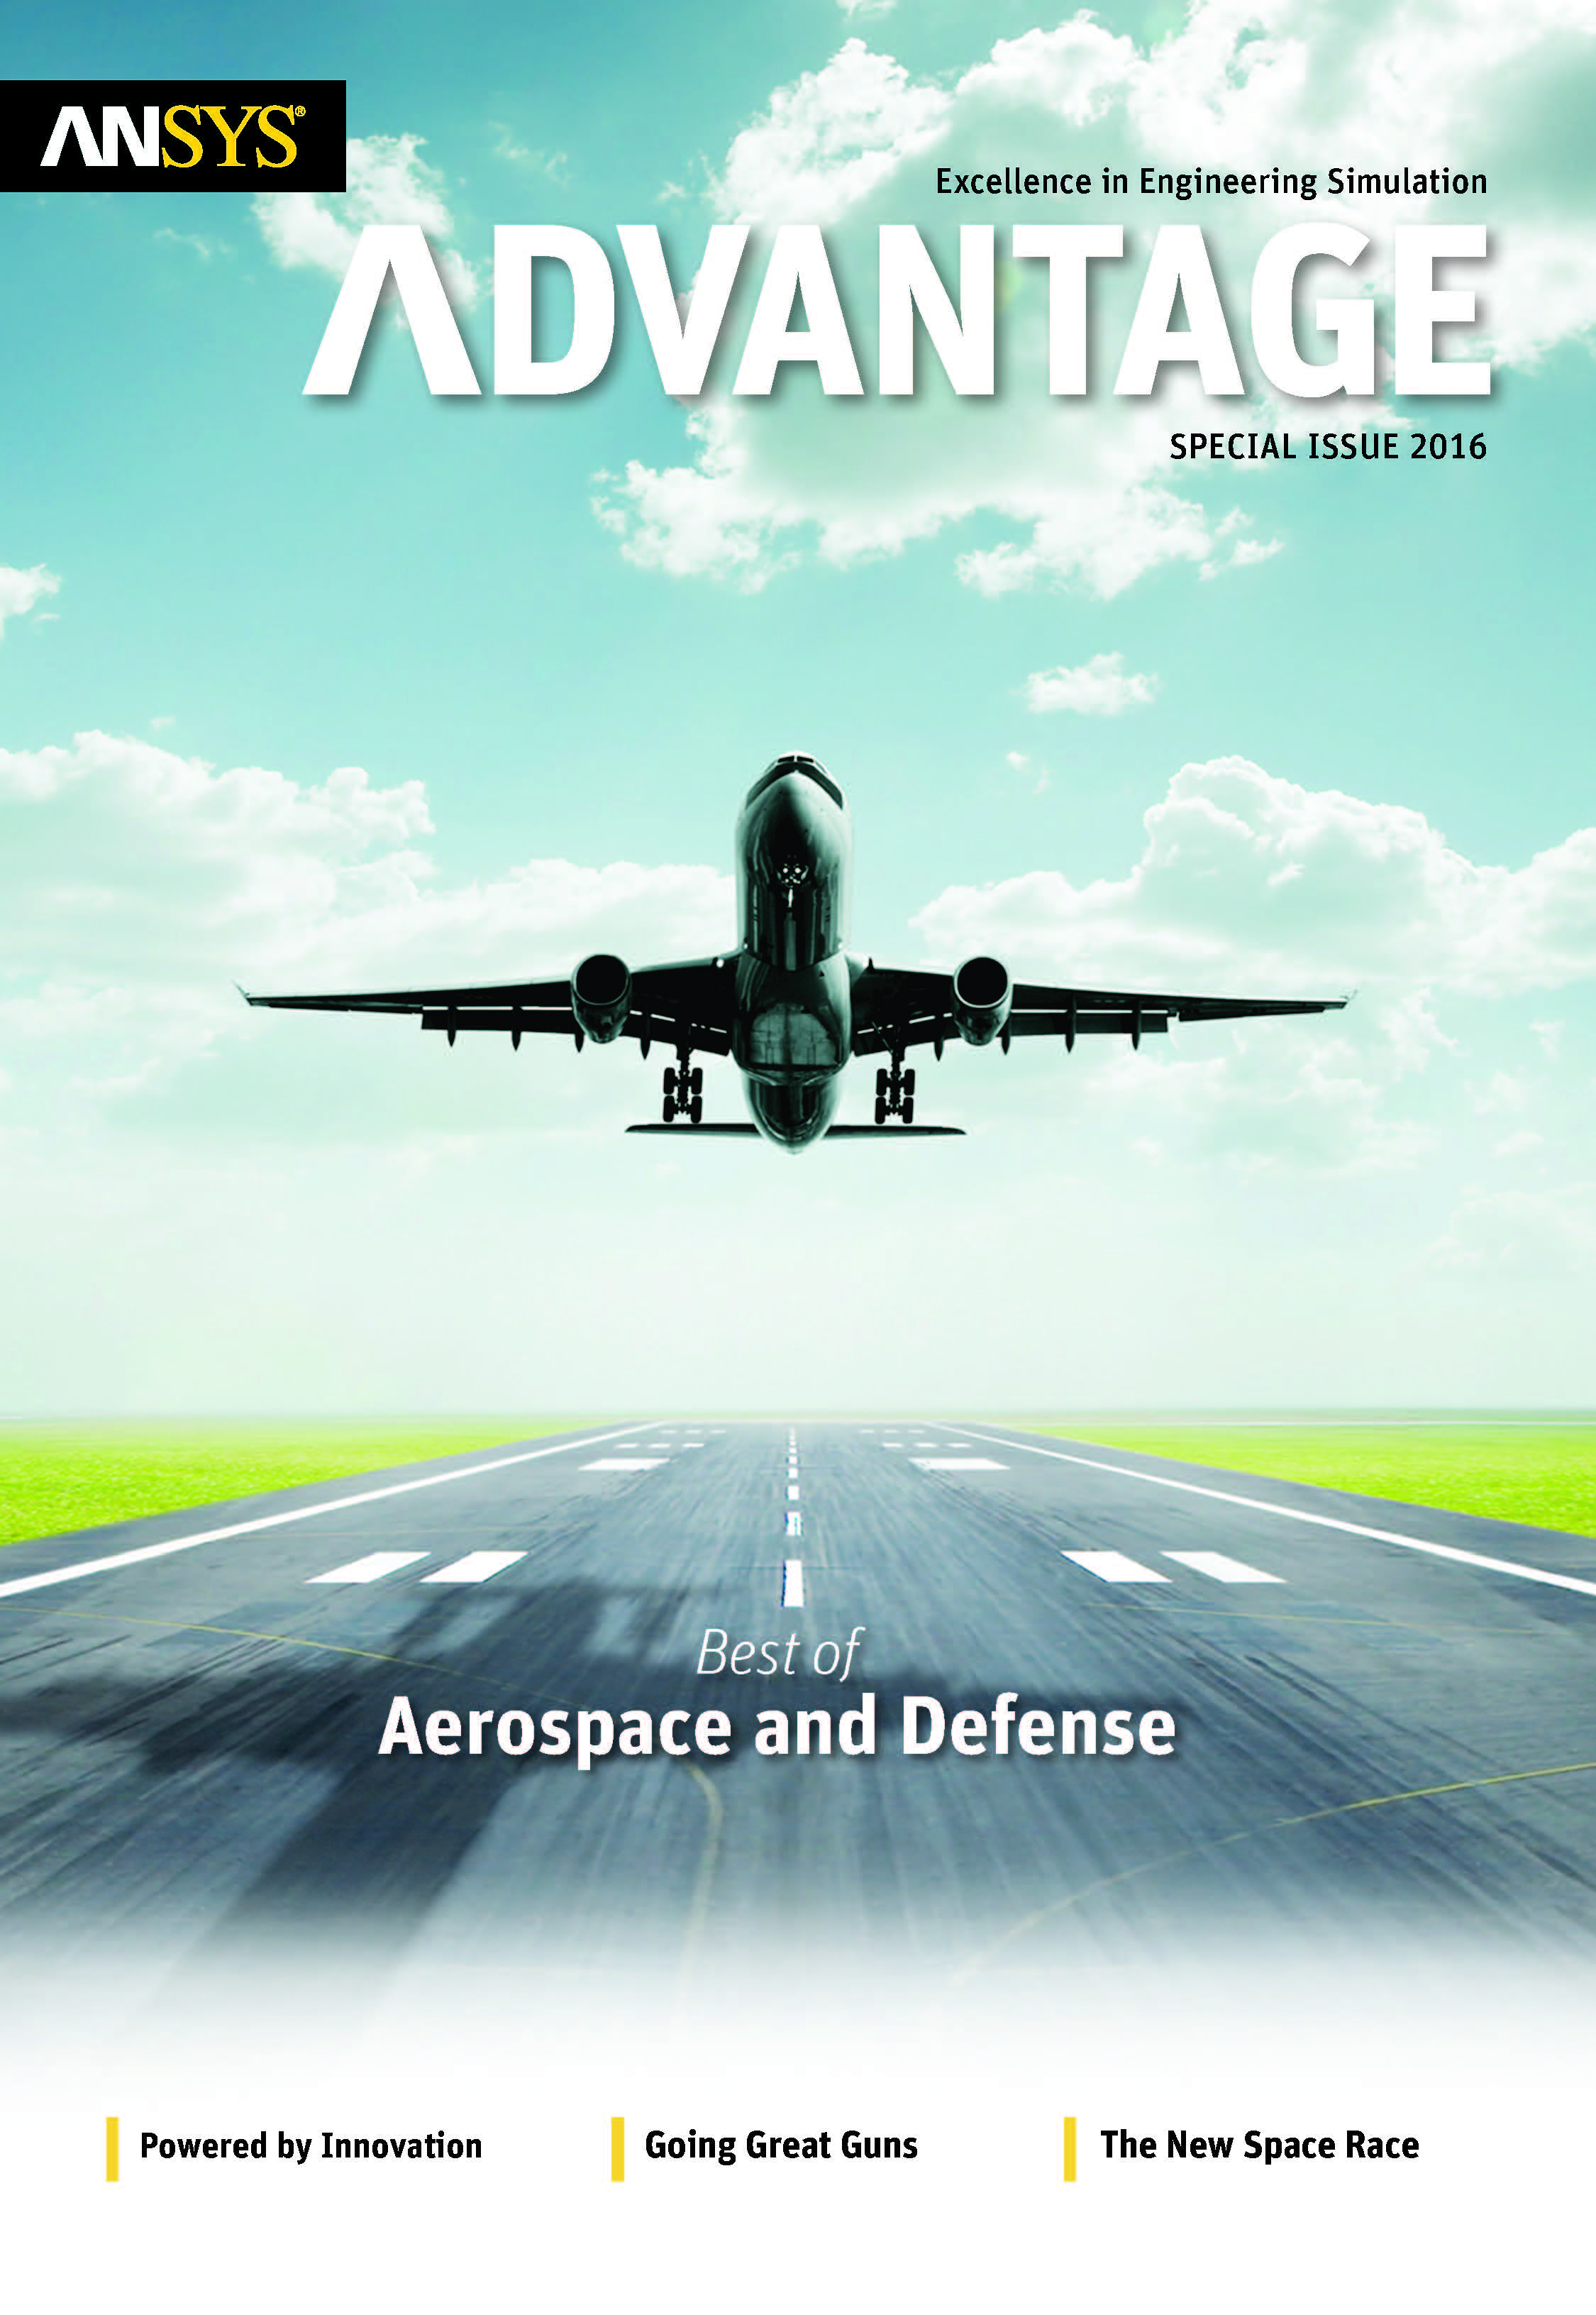 ANSYS Advantage Best of Aerospace and Defense. Special ISSUE 2016